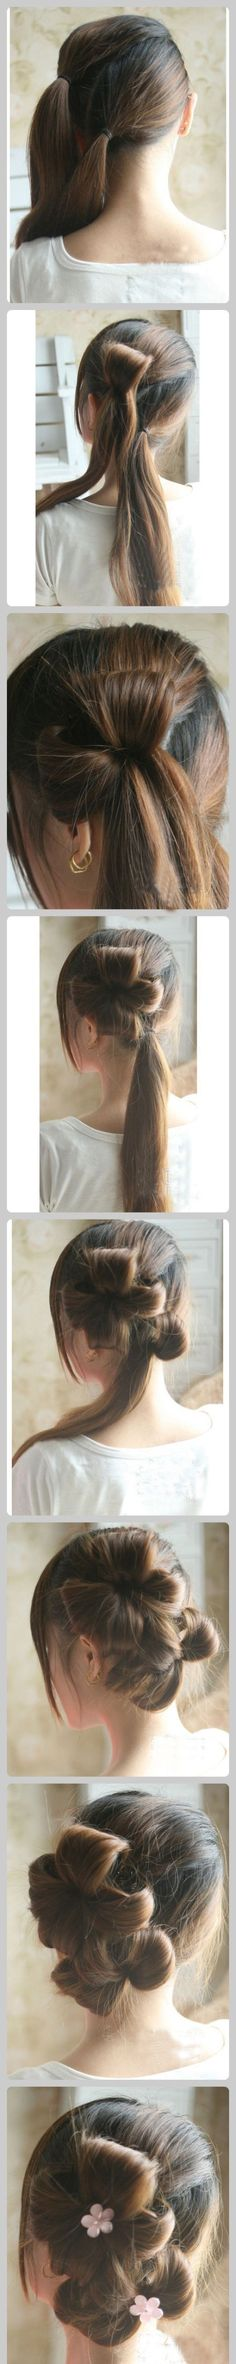 floral bun how to